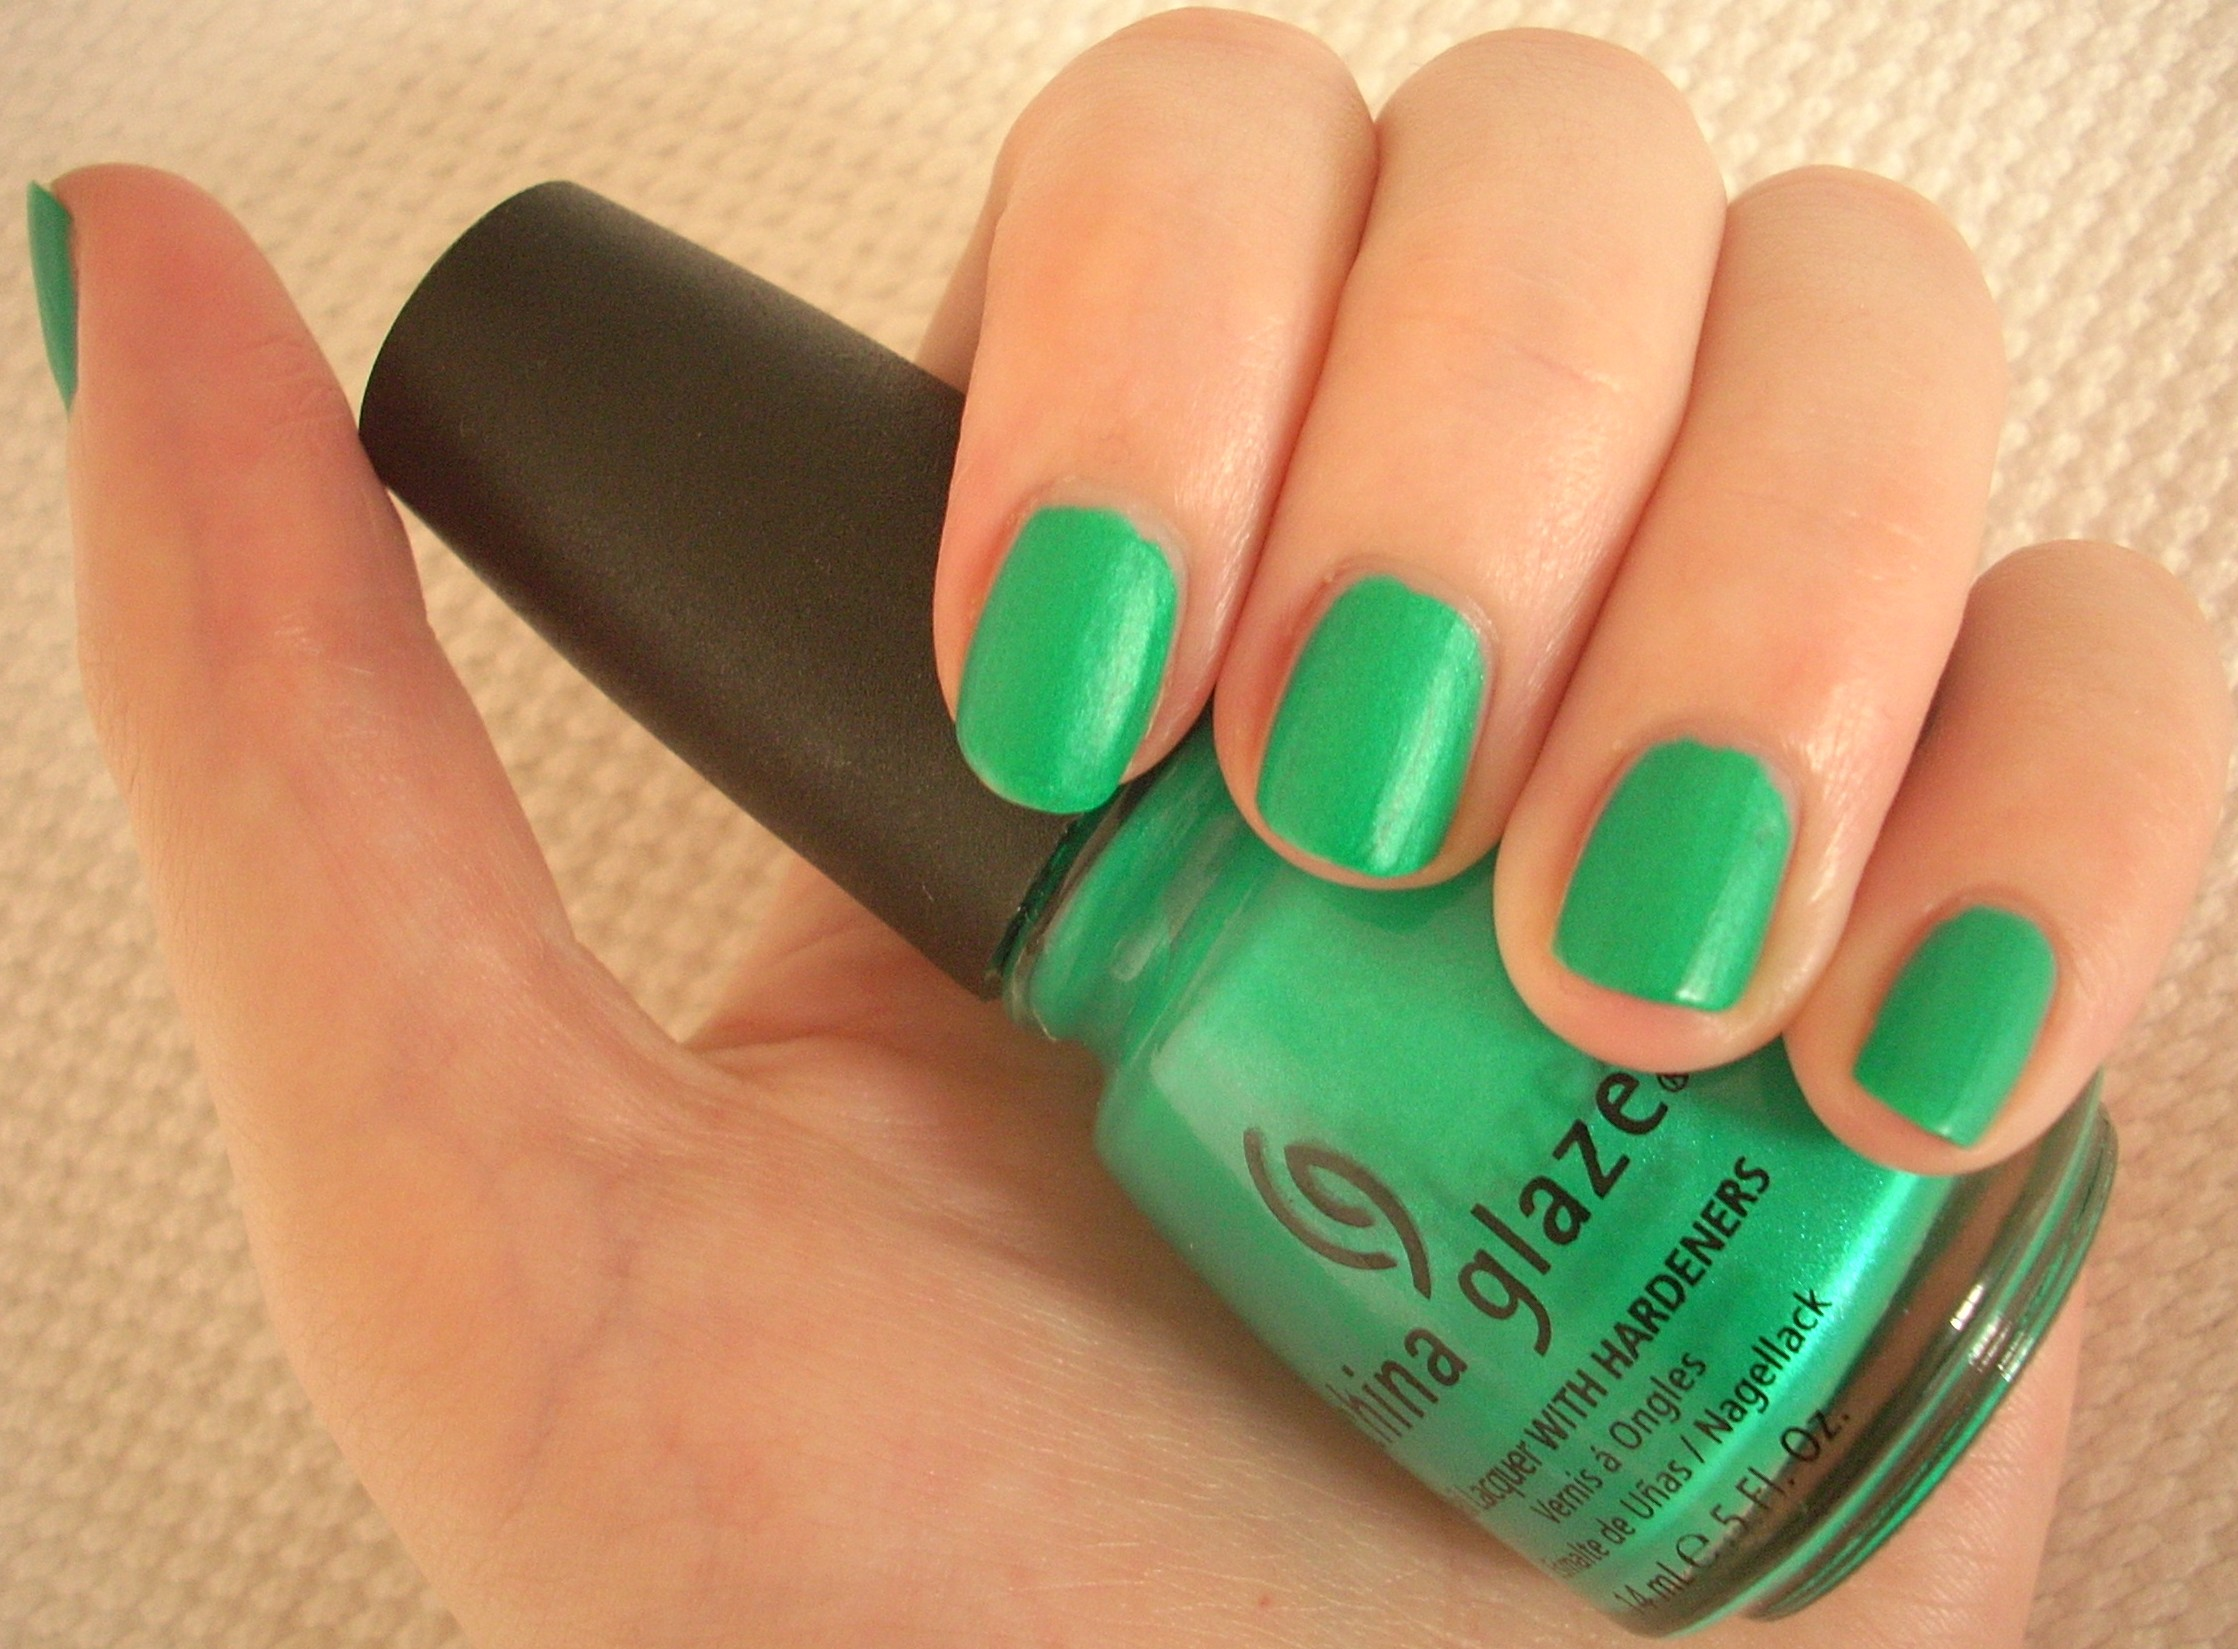 China glaze turned up turquoise nail polish review through the looks nvjuhfo Gallery